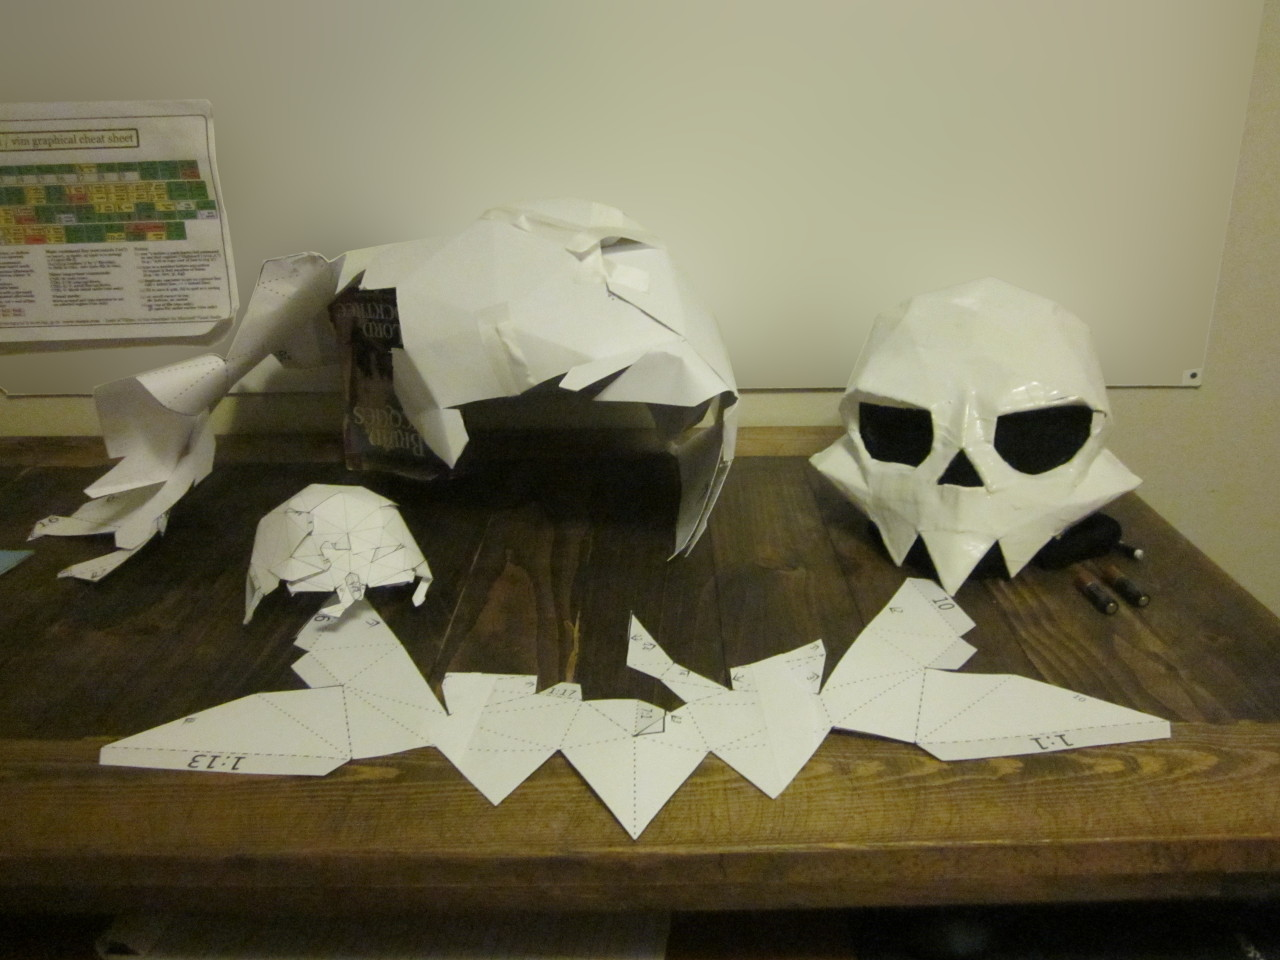 Three heaps of paper and one completed skull sit on a wooden table.